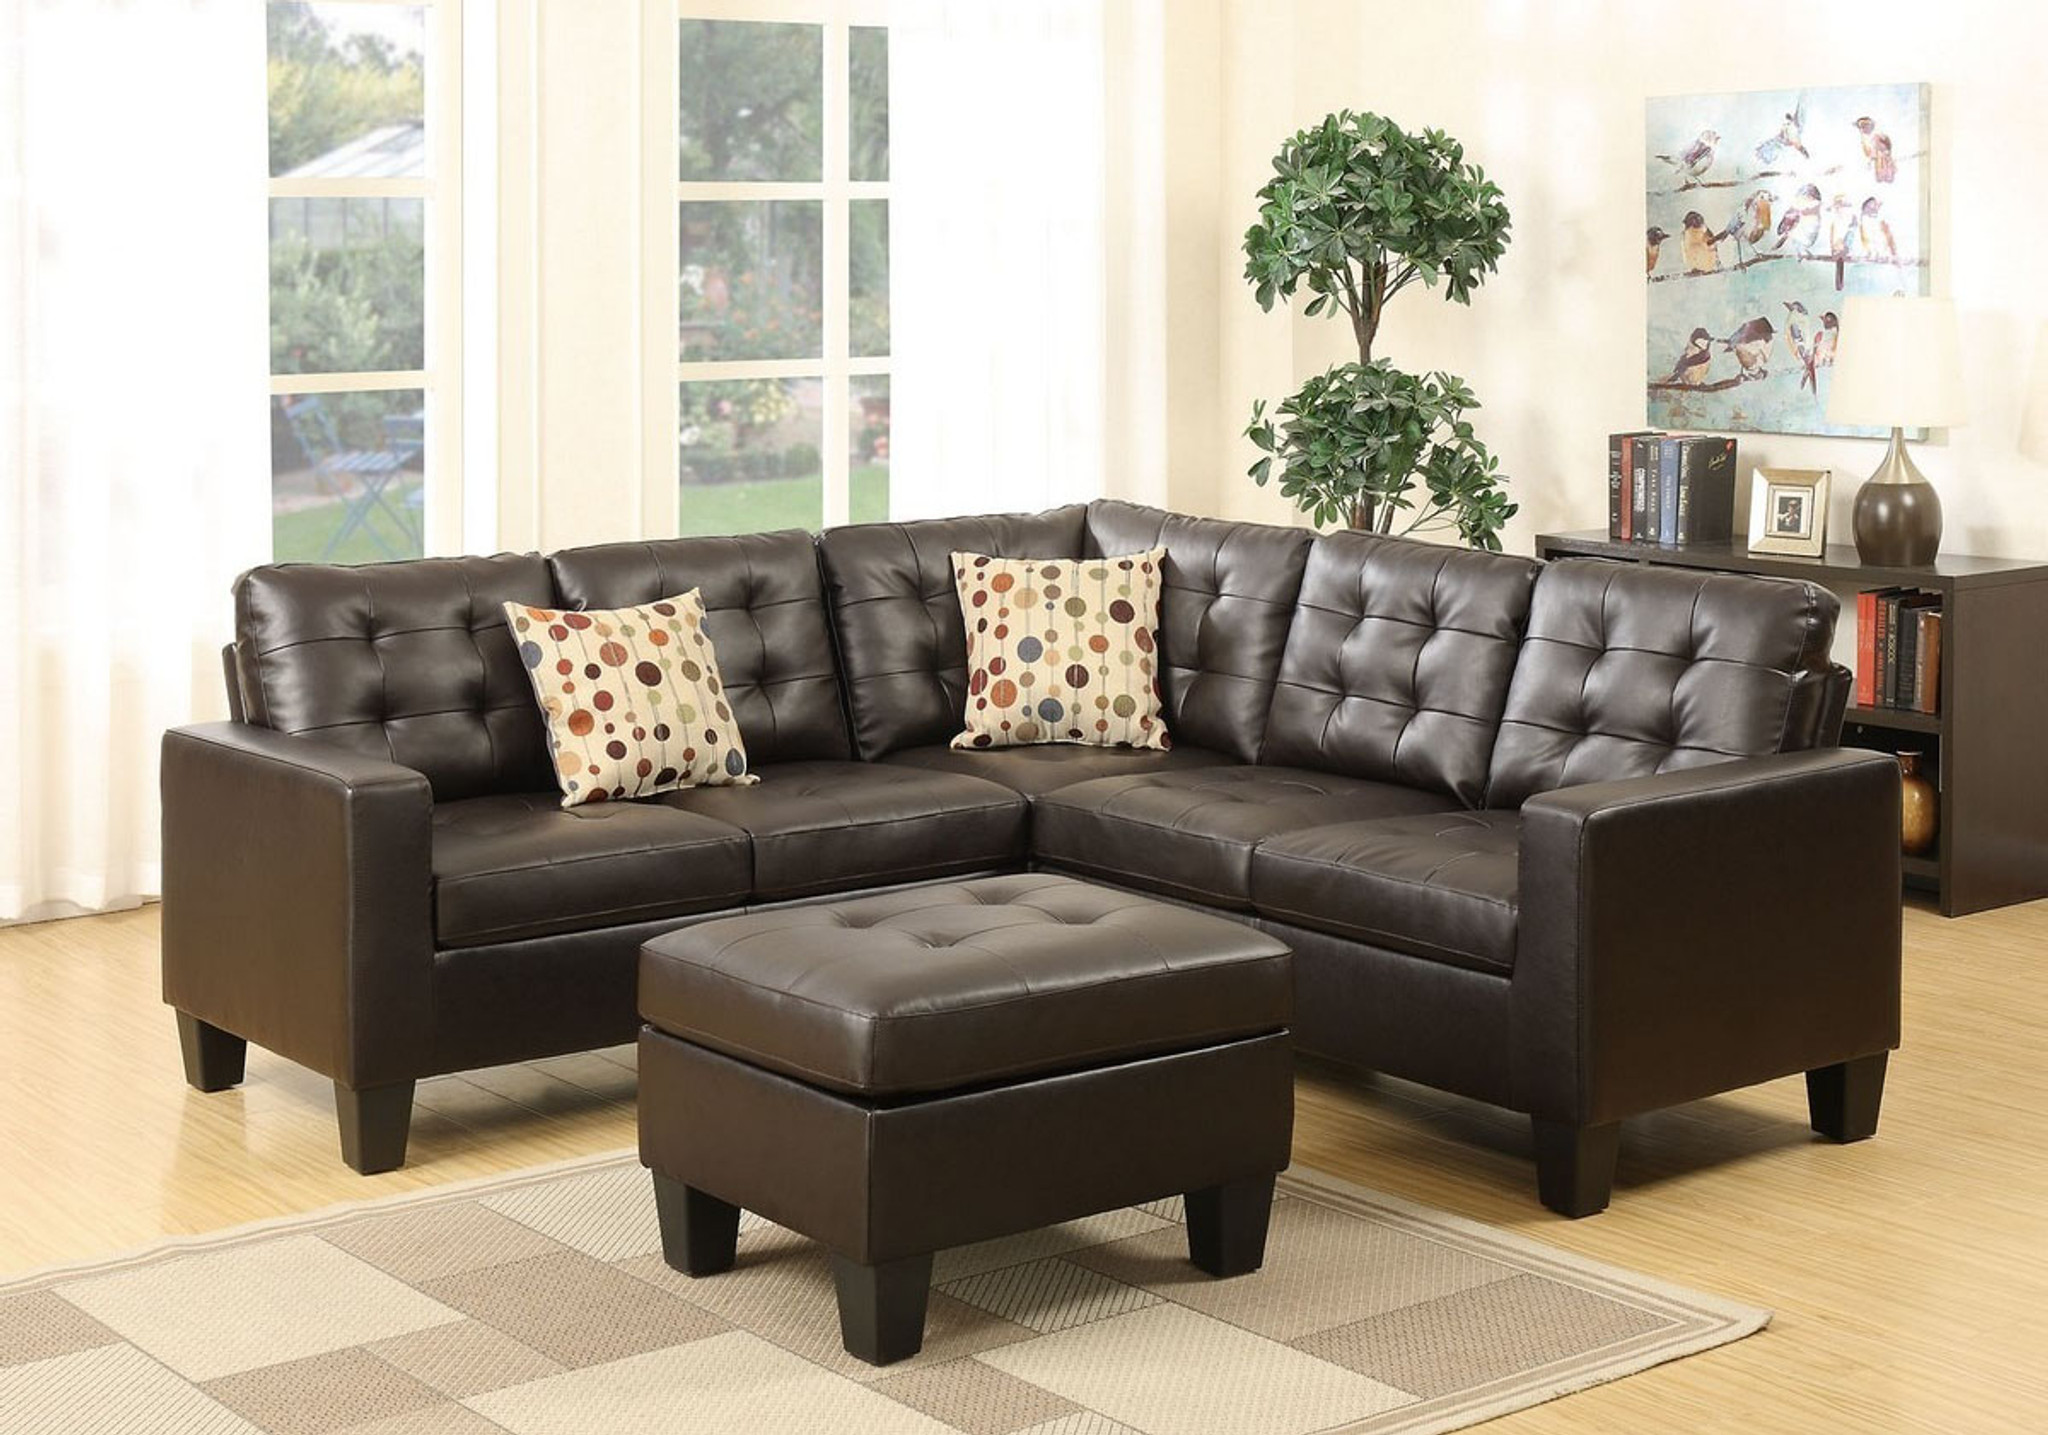 4 pcs modular sectional sofa set w ottoman 2 accent pillows upholstered in espresso leather